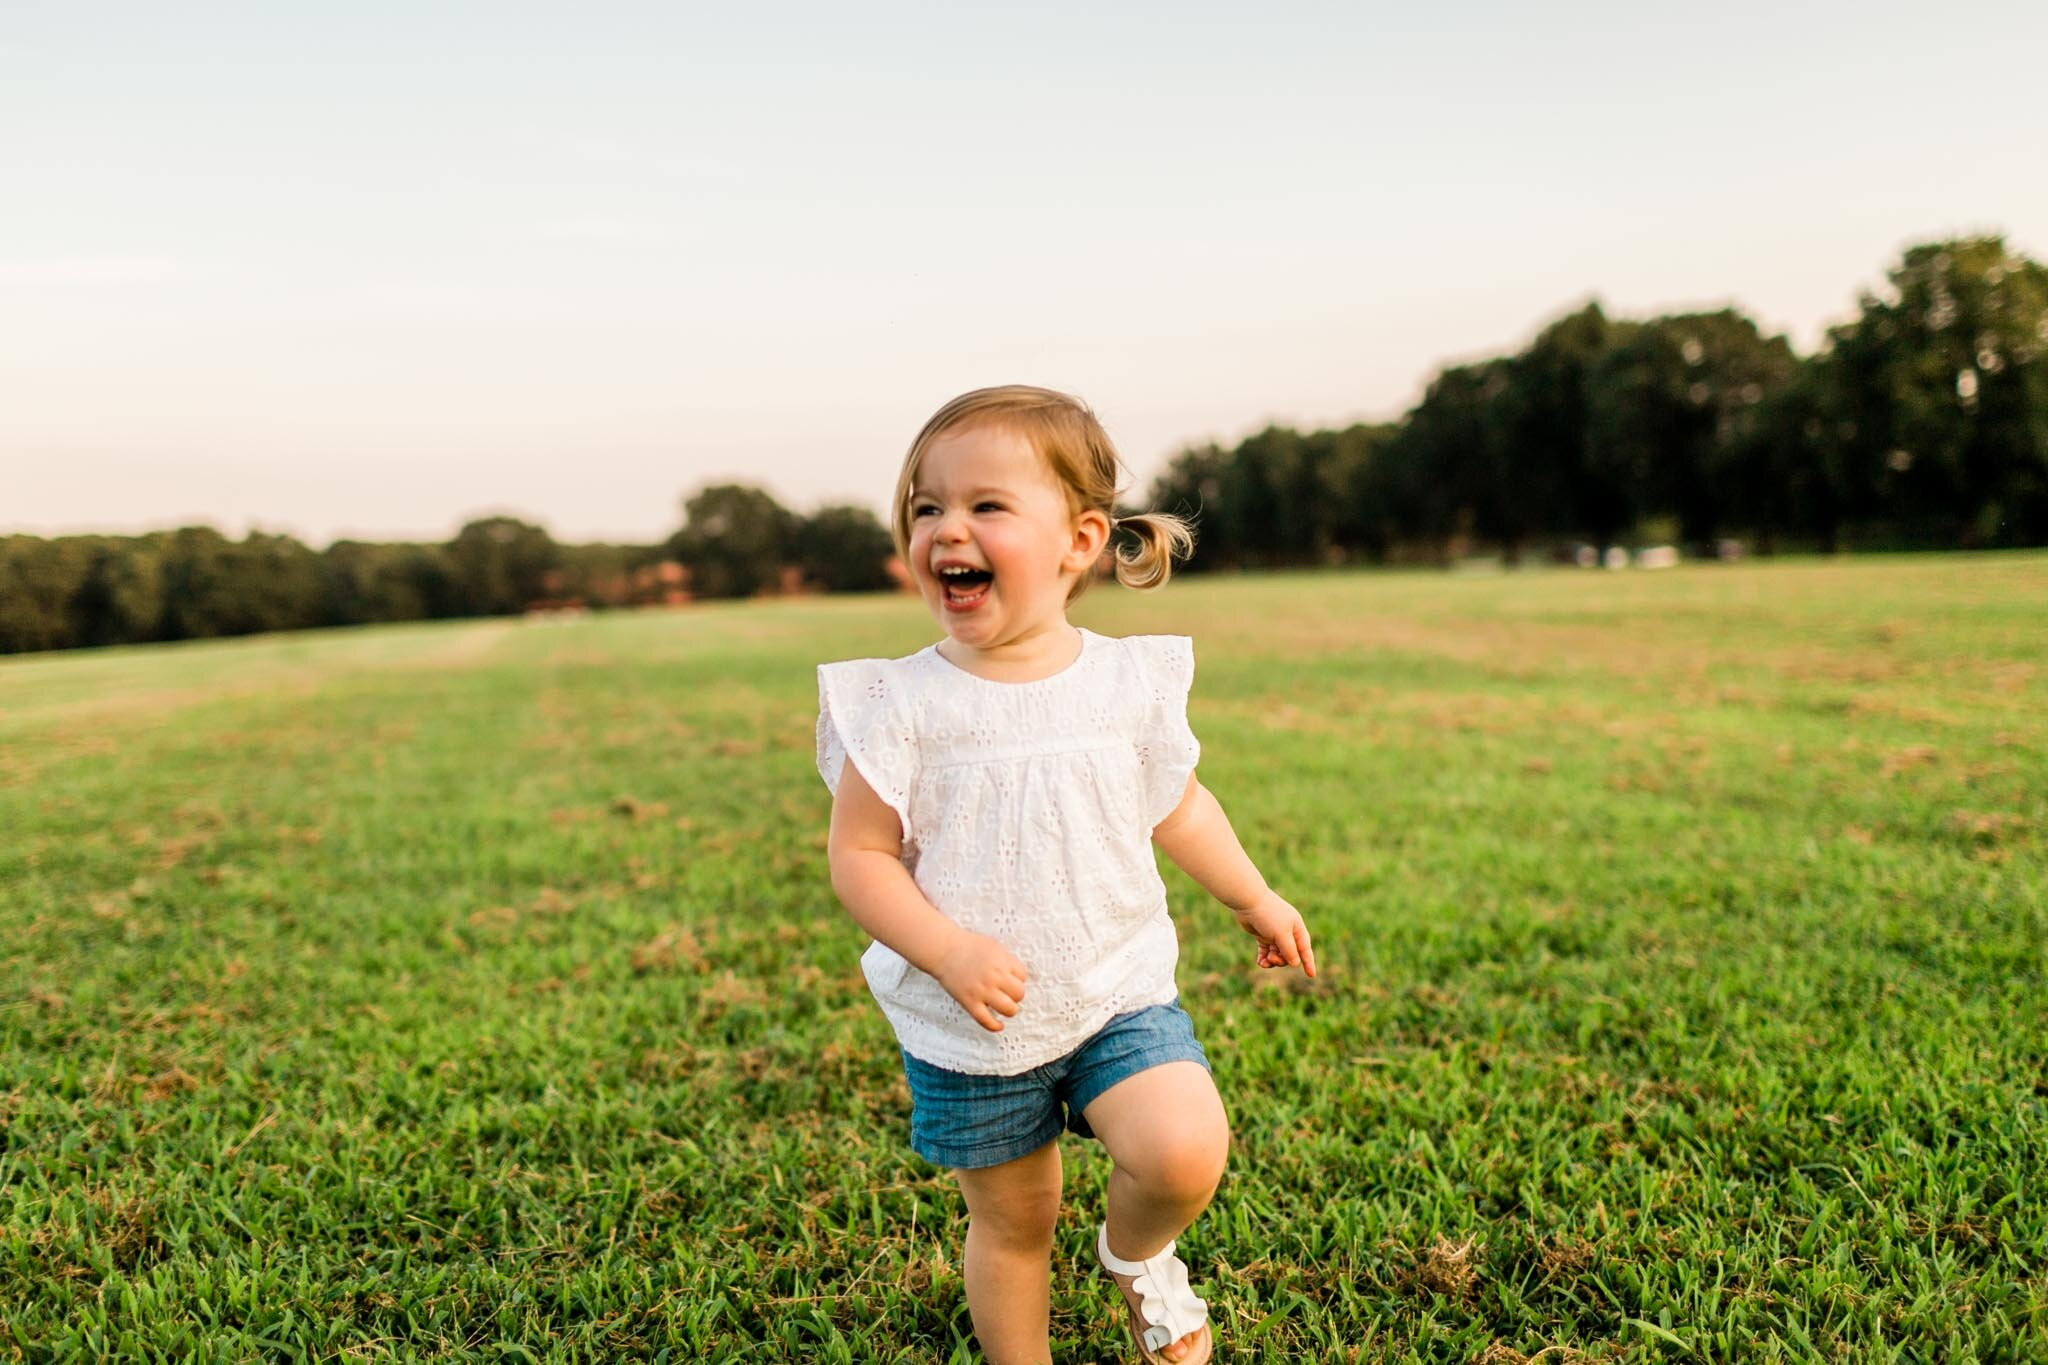 Girl running in open field during sunset at Dix Park | Raleigh Family Photographer | By G. Lin Photography